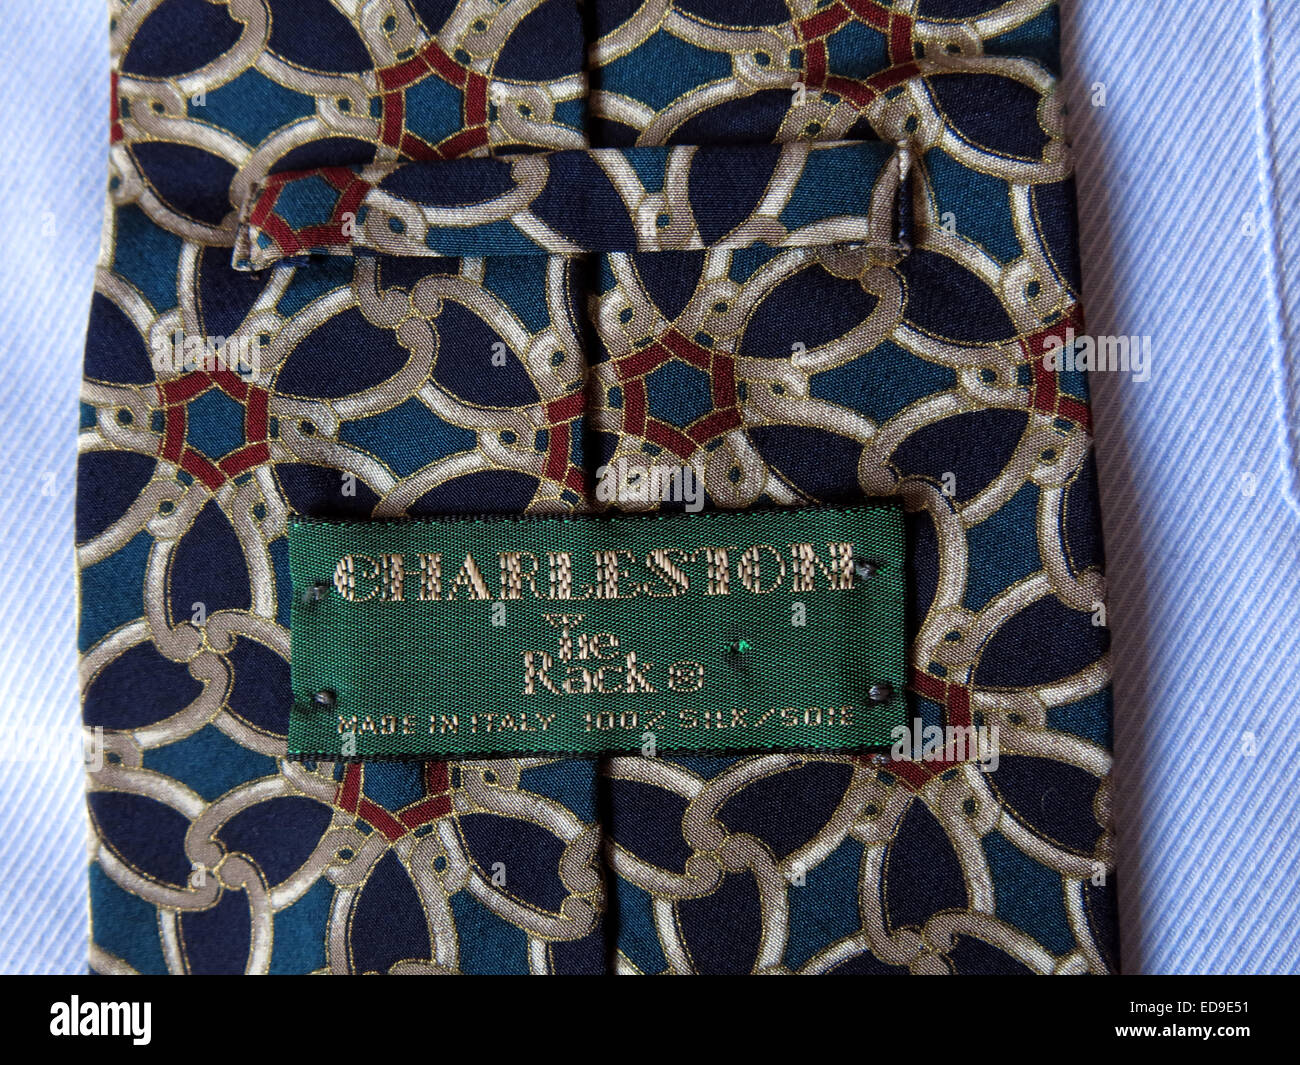 man mans 2nd hand second secondhand back front patterned,retro,selection,on,a,shirt,pattern,patterned,weave,weaving,material,fashion,business,office,apparel,US,English,fashionable,fabric,colour,coloured,colored,label,slim,wide,kipper,designer,uniform,school,casual,Tie,rack,Charleston,made,in,italy,gotonysmith close up close-up macro mode moda textile italian accessory,bow,business,businessman,cloth,clothes,clothing,collar,corporate,cravat,cute,design,designer,dress,elegance,elegant,fabric,fashion,fashionable,formal,garments,knot modern ascot tie,bow tie,bolo tie,zipper tie,cravat and clip-on tie